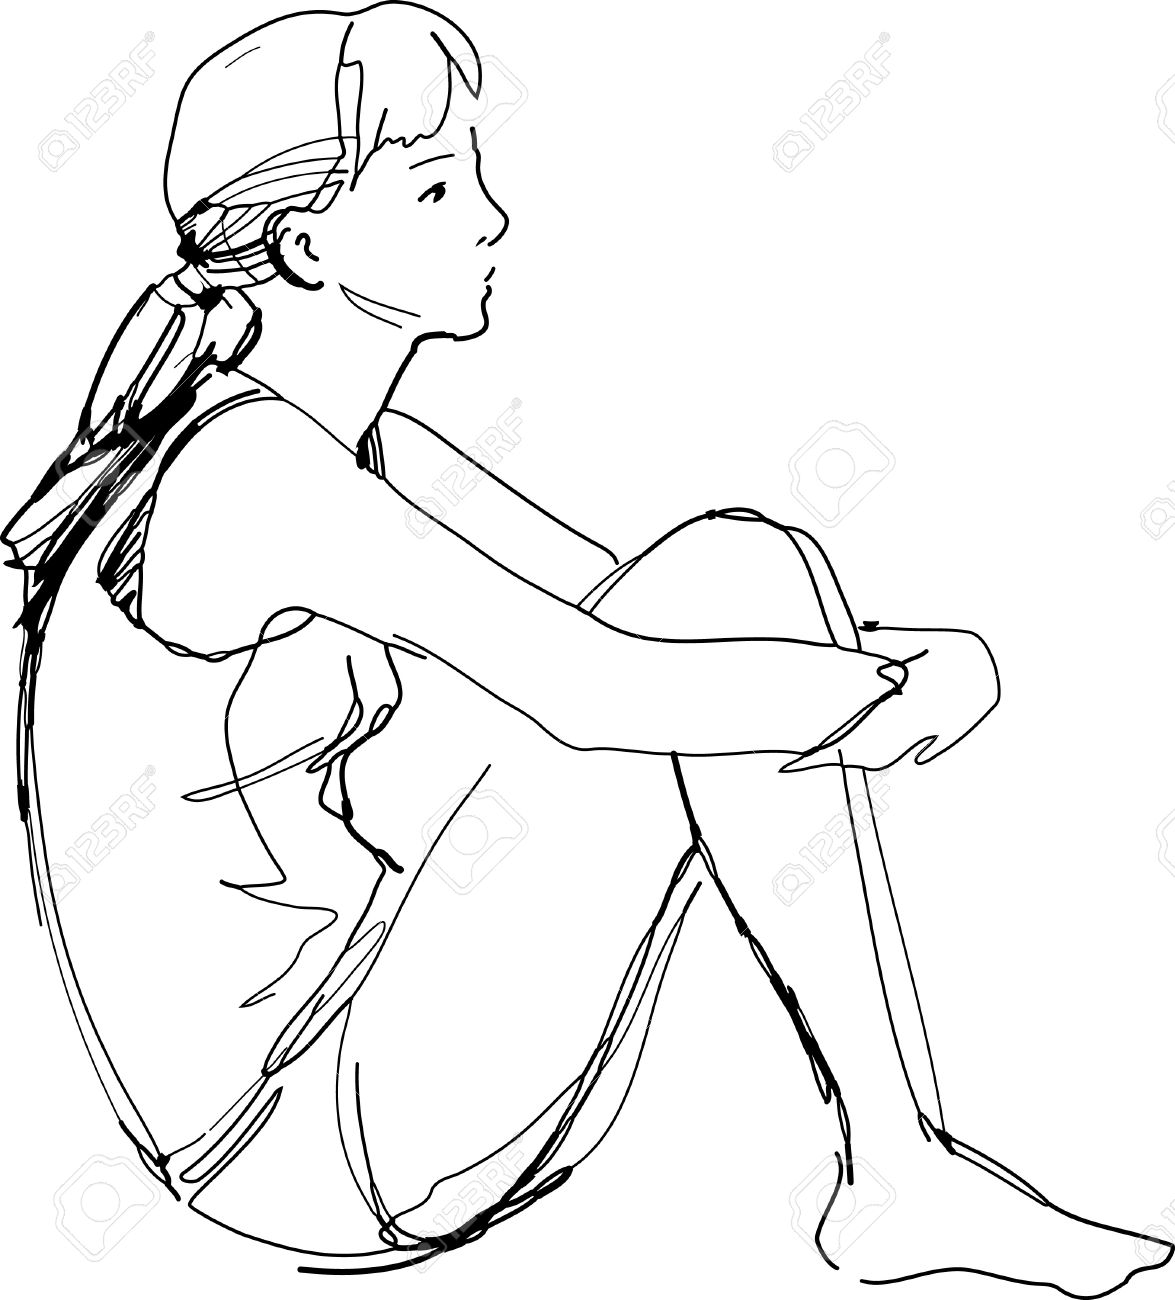 a sketch of a girl sitting hugging her knees Stock Vector - 10390249